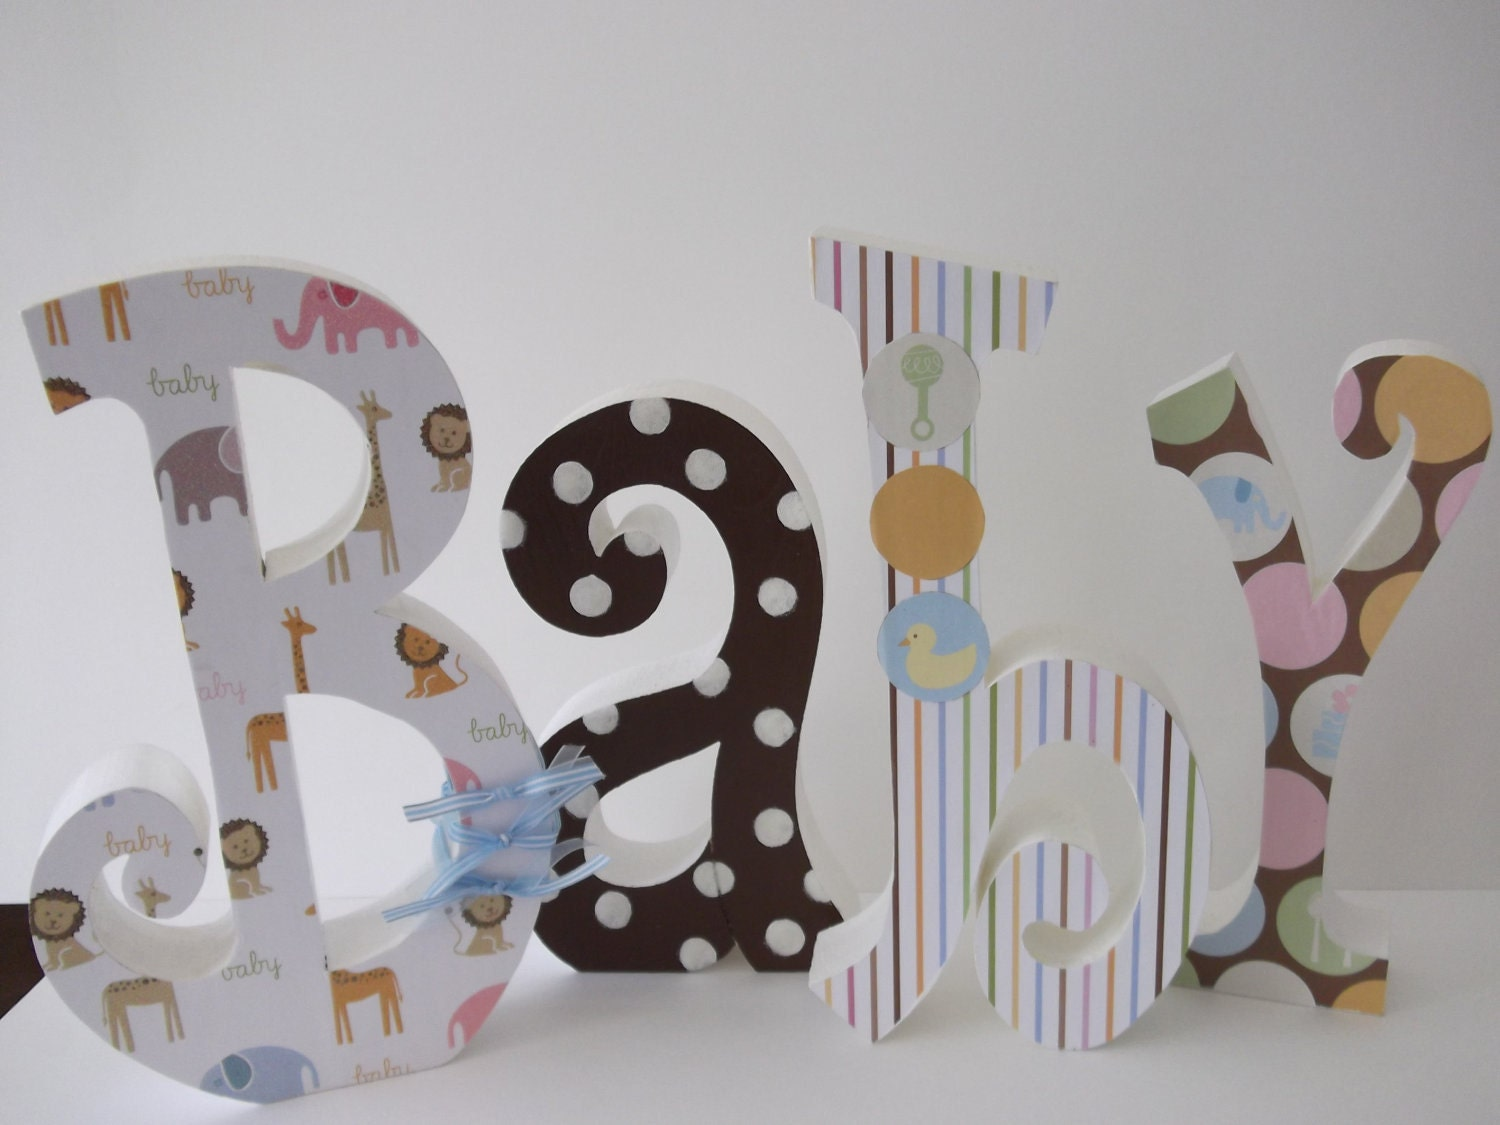 baby letters wood letters nursery letters nursery decor home